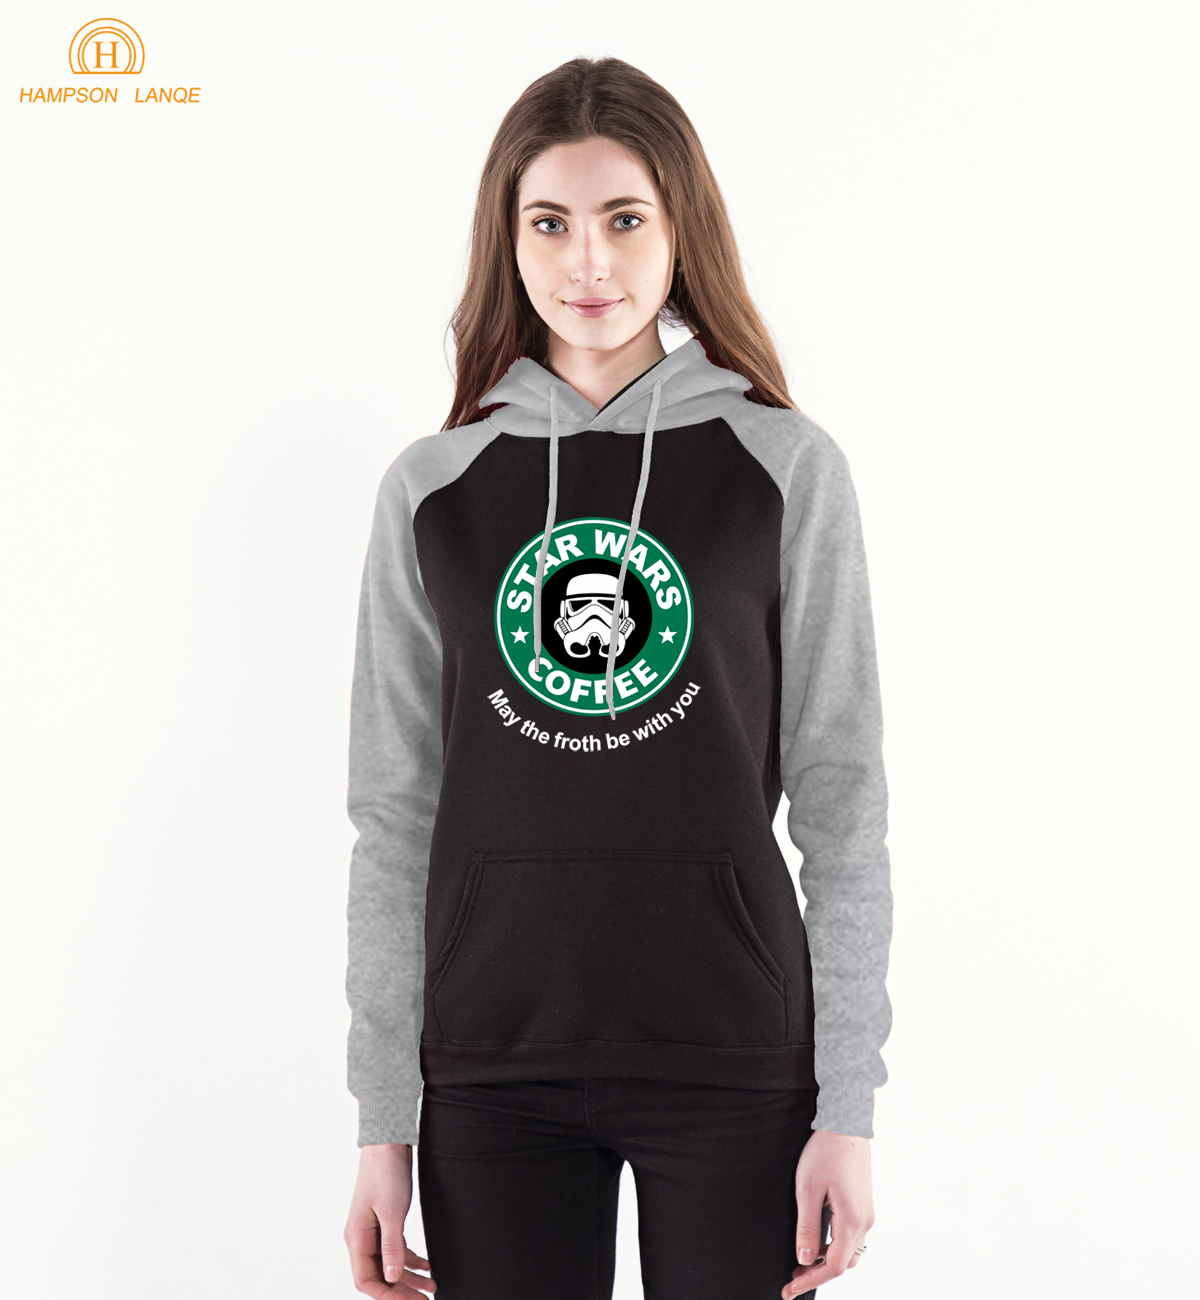 Star Wars Coffee Raglan Hoodie Women 2019 New Style Casual Sweatshirts Hoodies Women's Spring Autumn Warm Hoody Brand Clothing